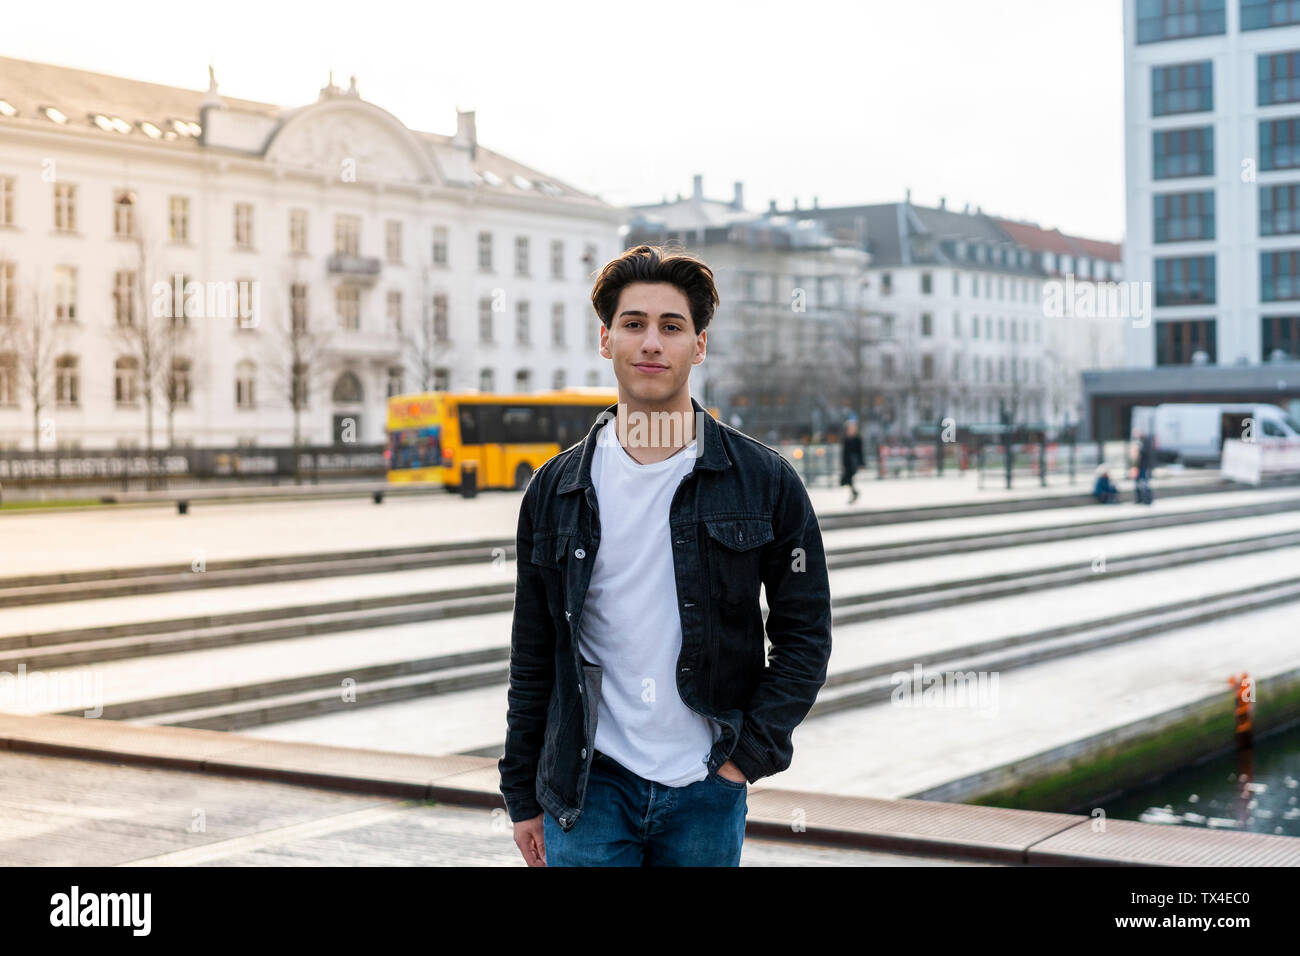 Denmark, Copenhagen, portrait of a confident young man in the city - Stock Image